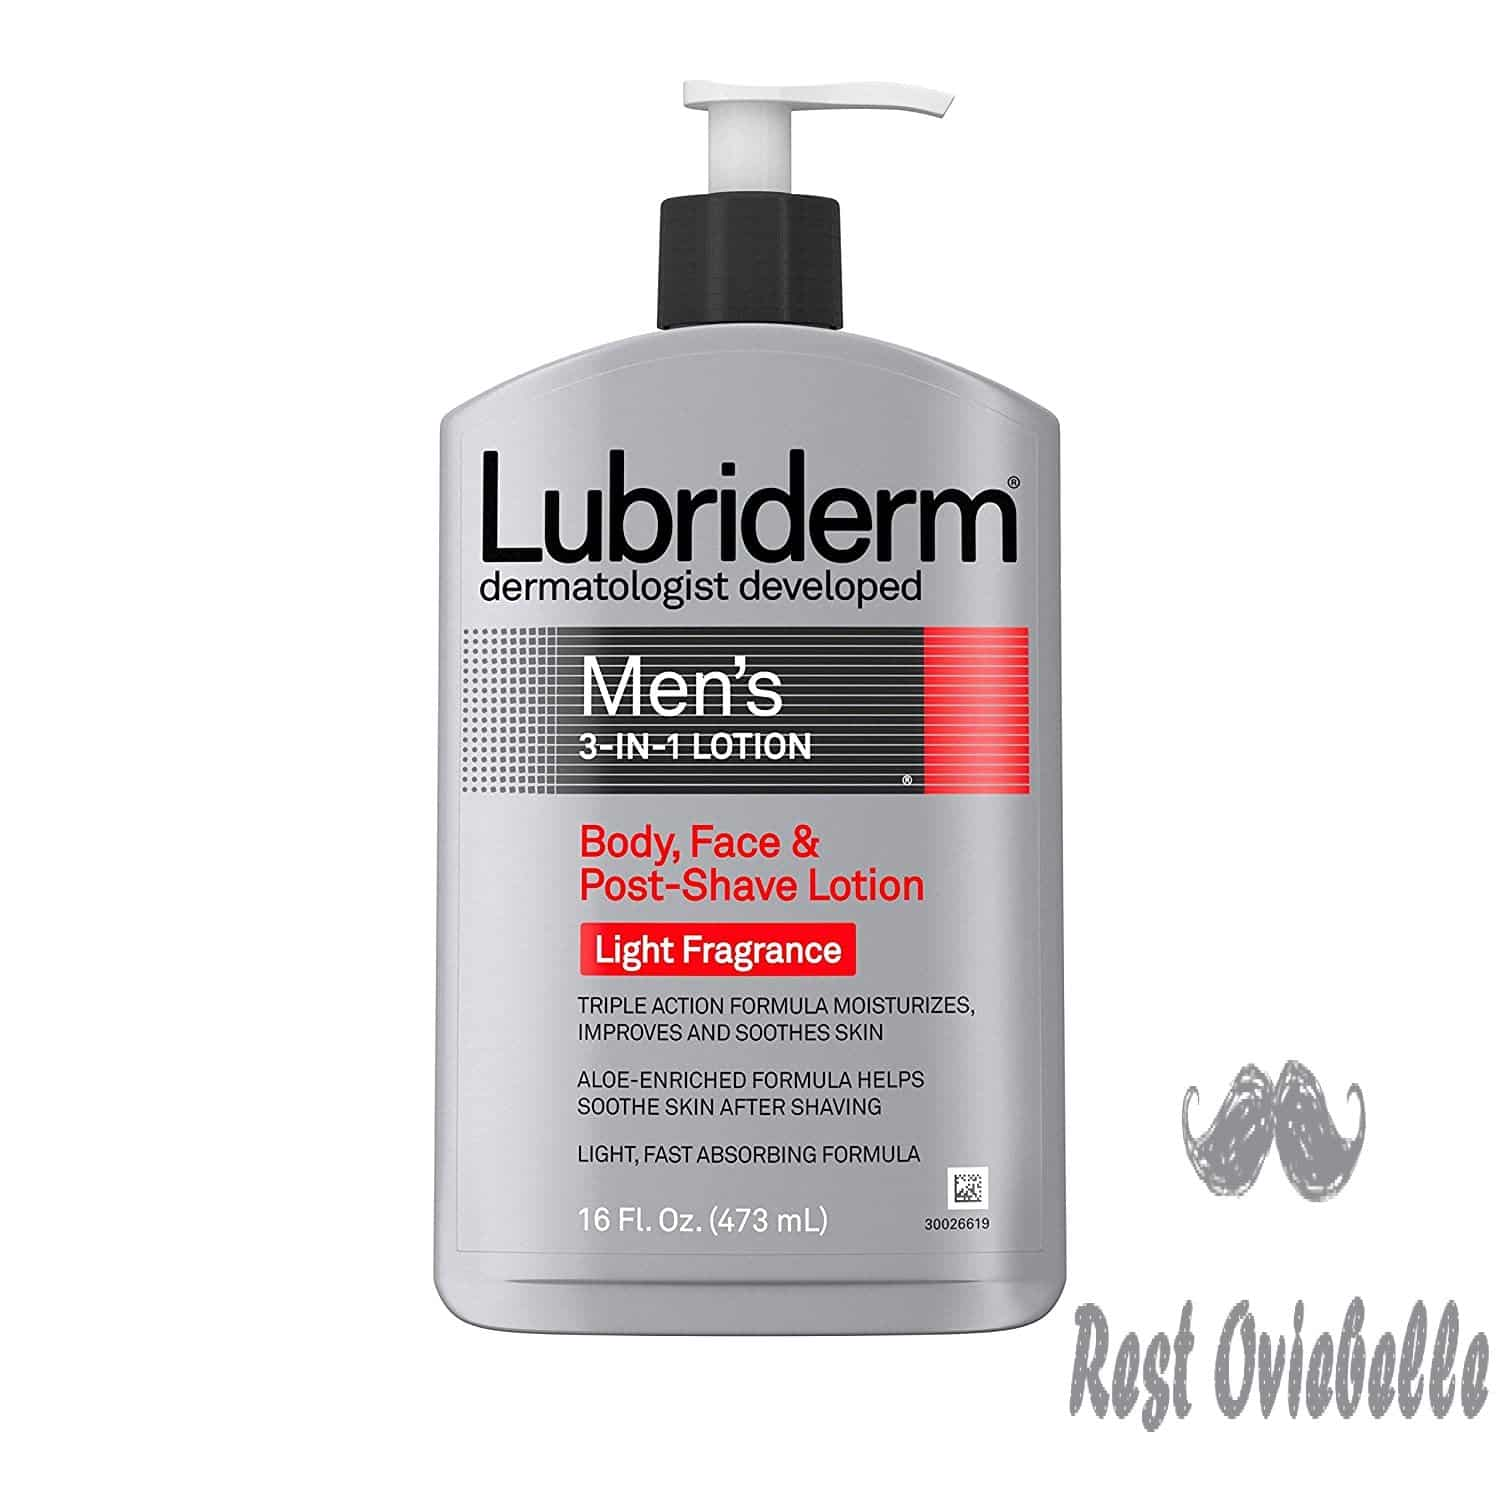 Lubriderm Men's 3-In-1 Lotion Enriched